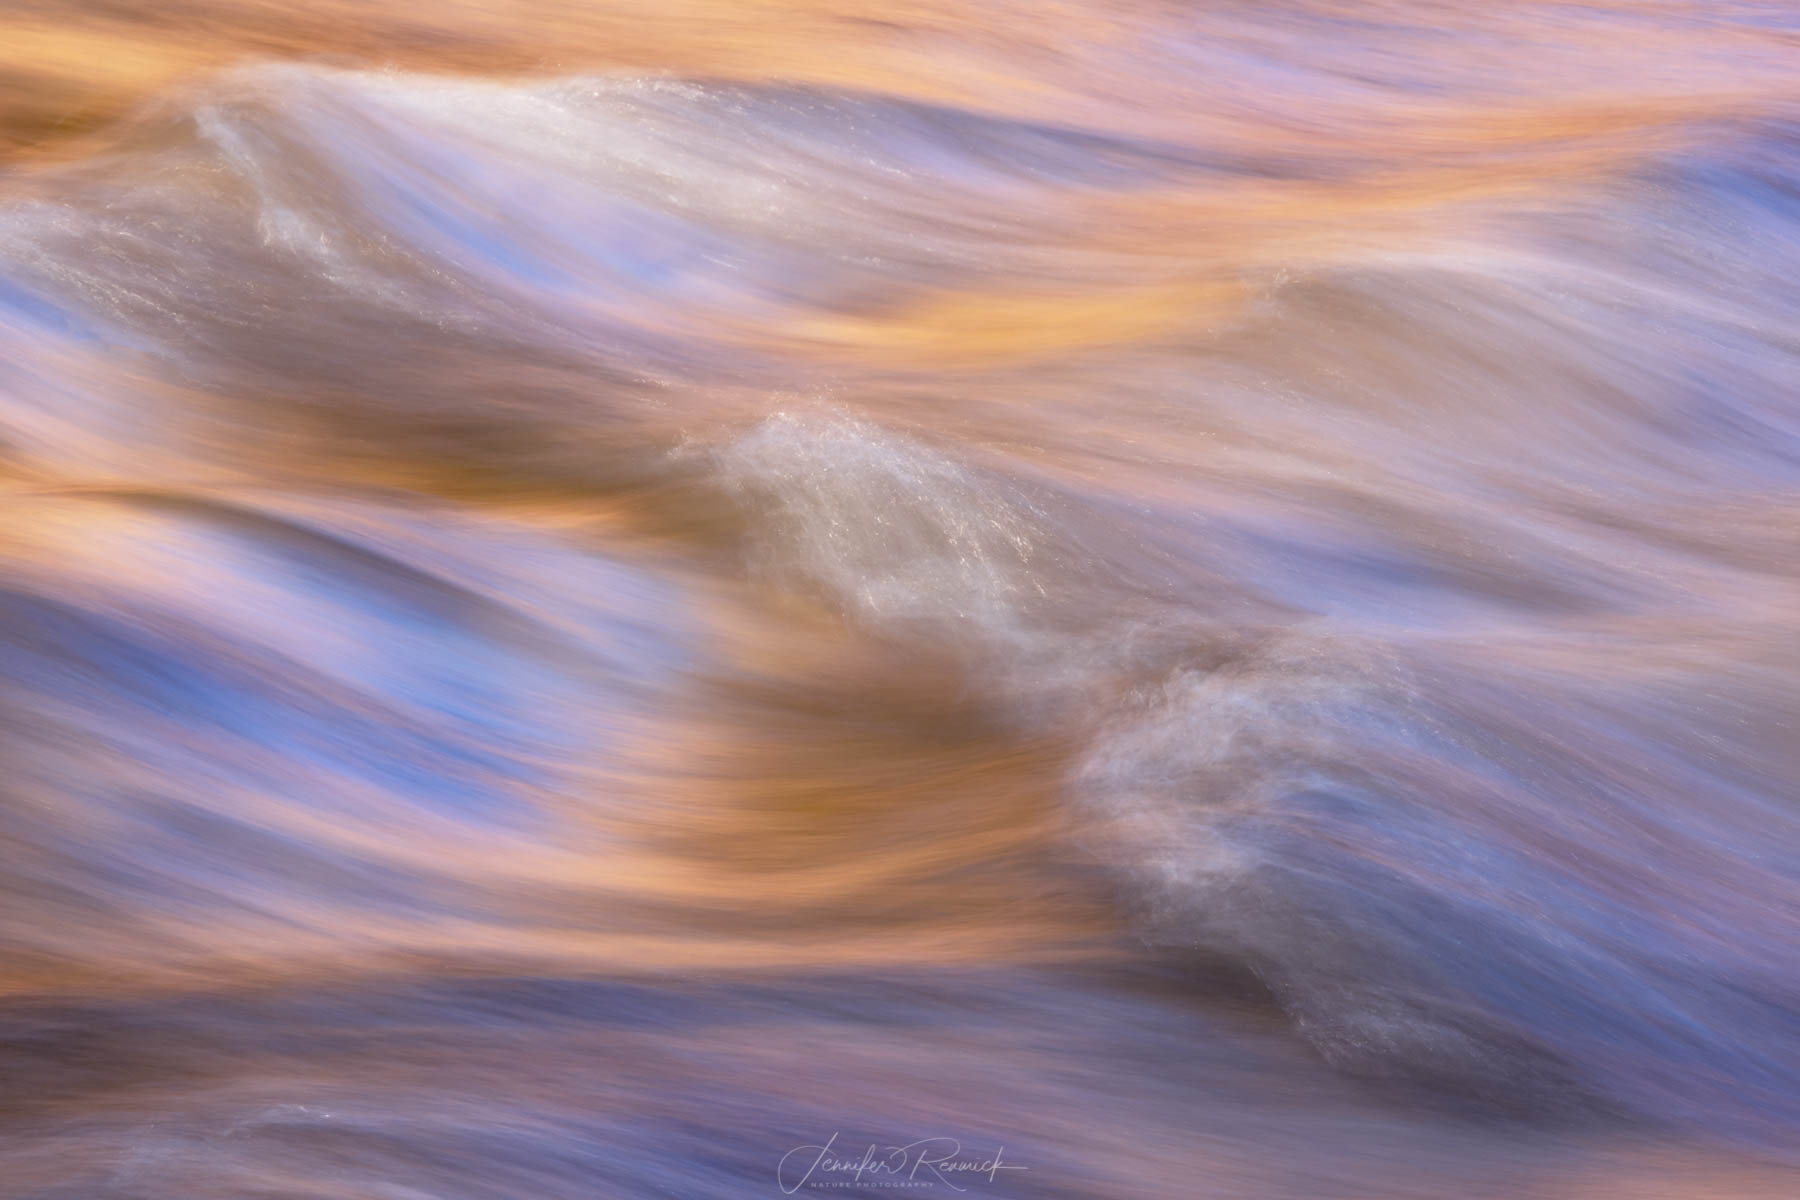 Brushed / Jennifer Renwick / A slower shutter speed captures the colors and textures of the creek, the blue from the sky, and the orange from the reflected canyon light